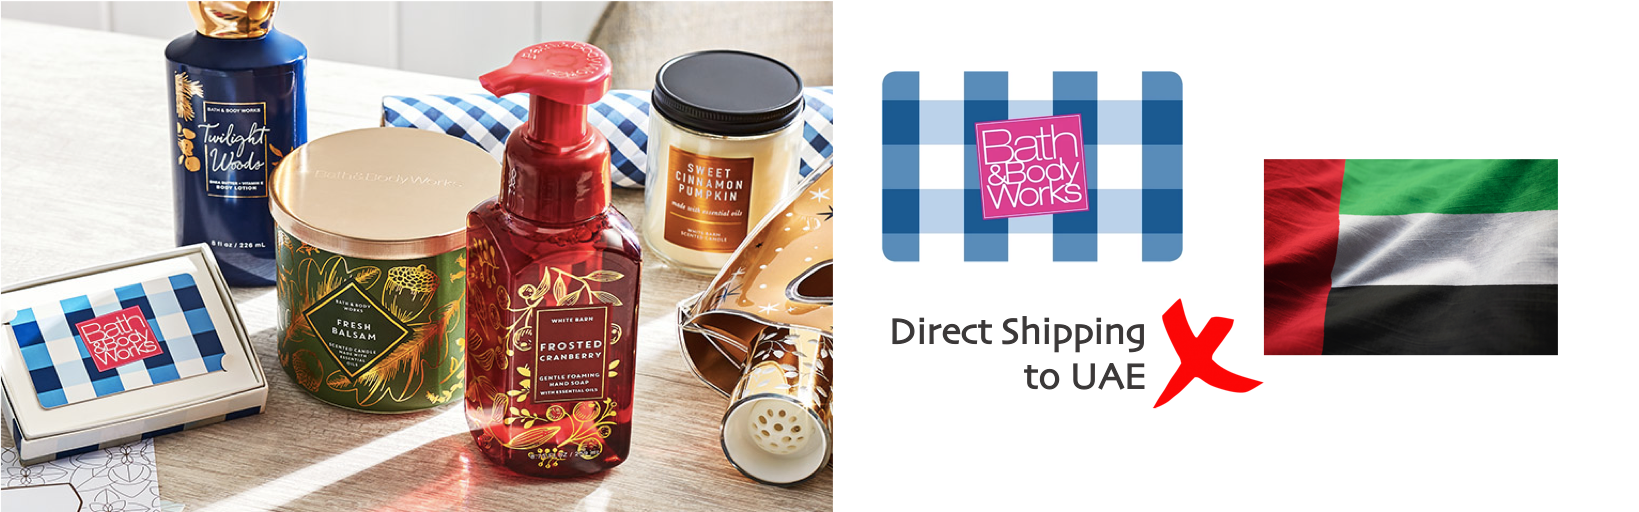 shop Bath & Body Works ship to uae